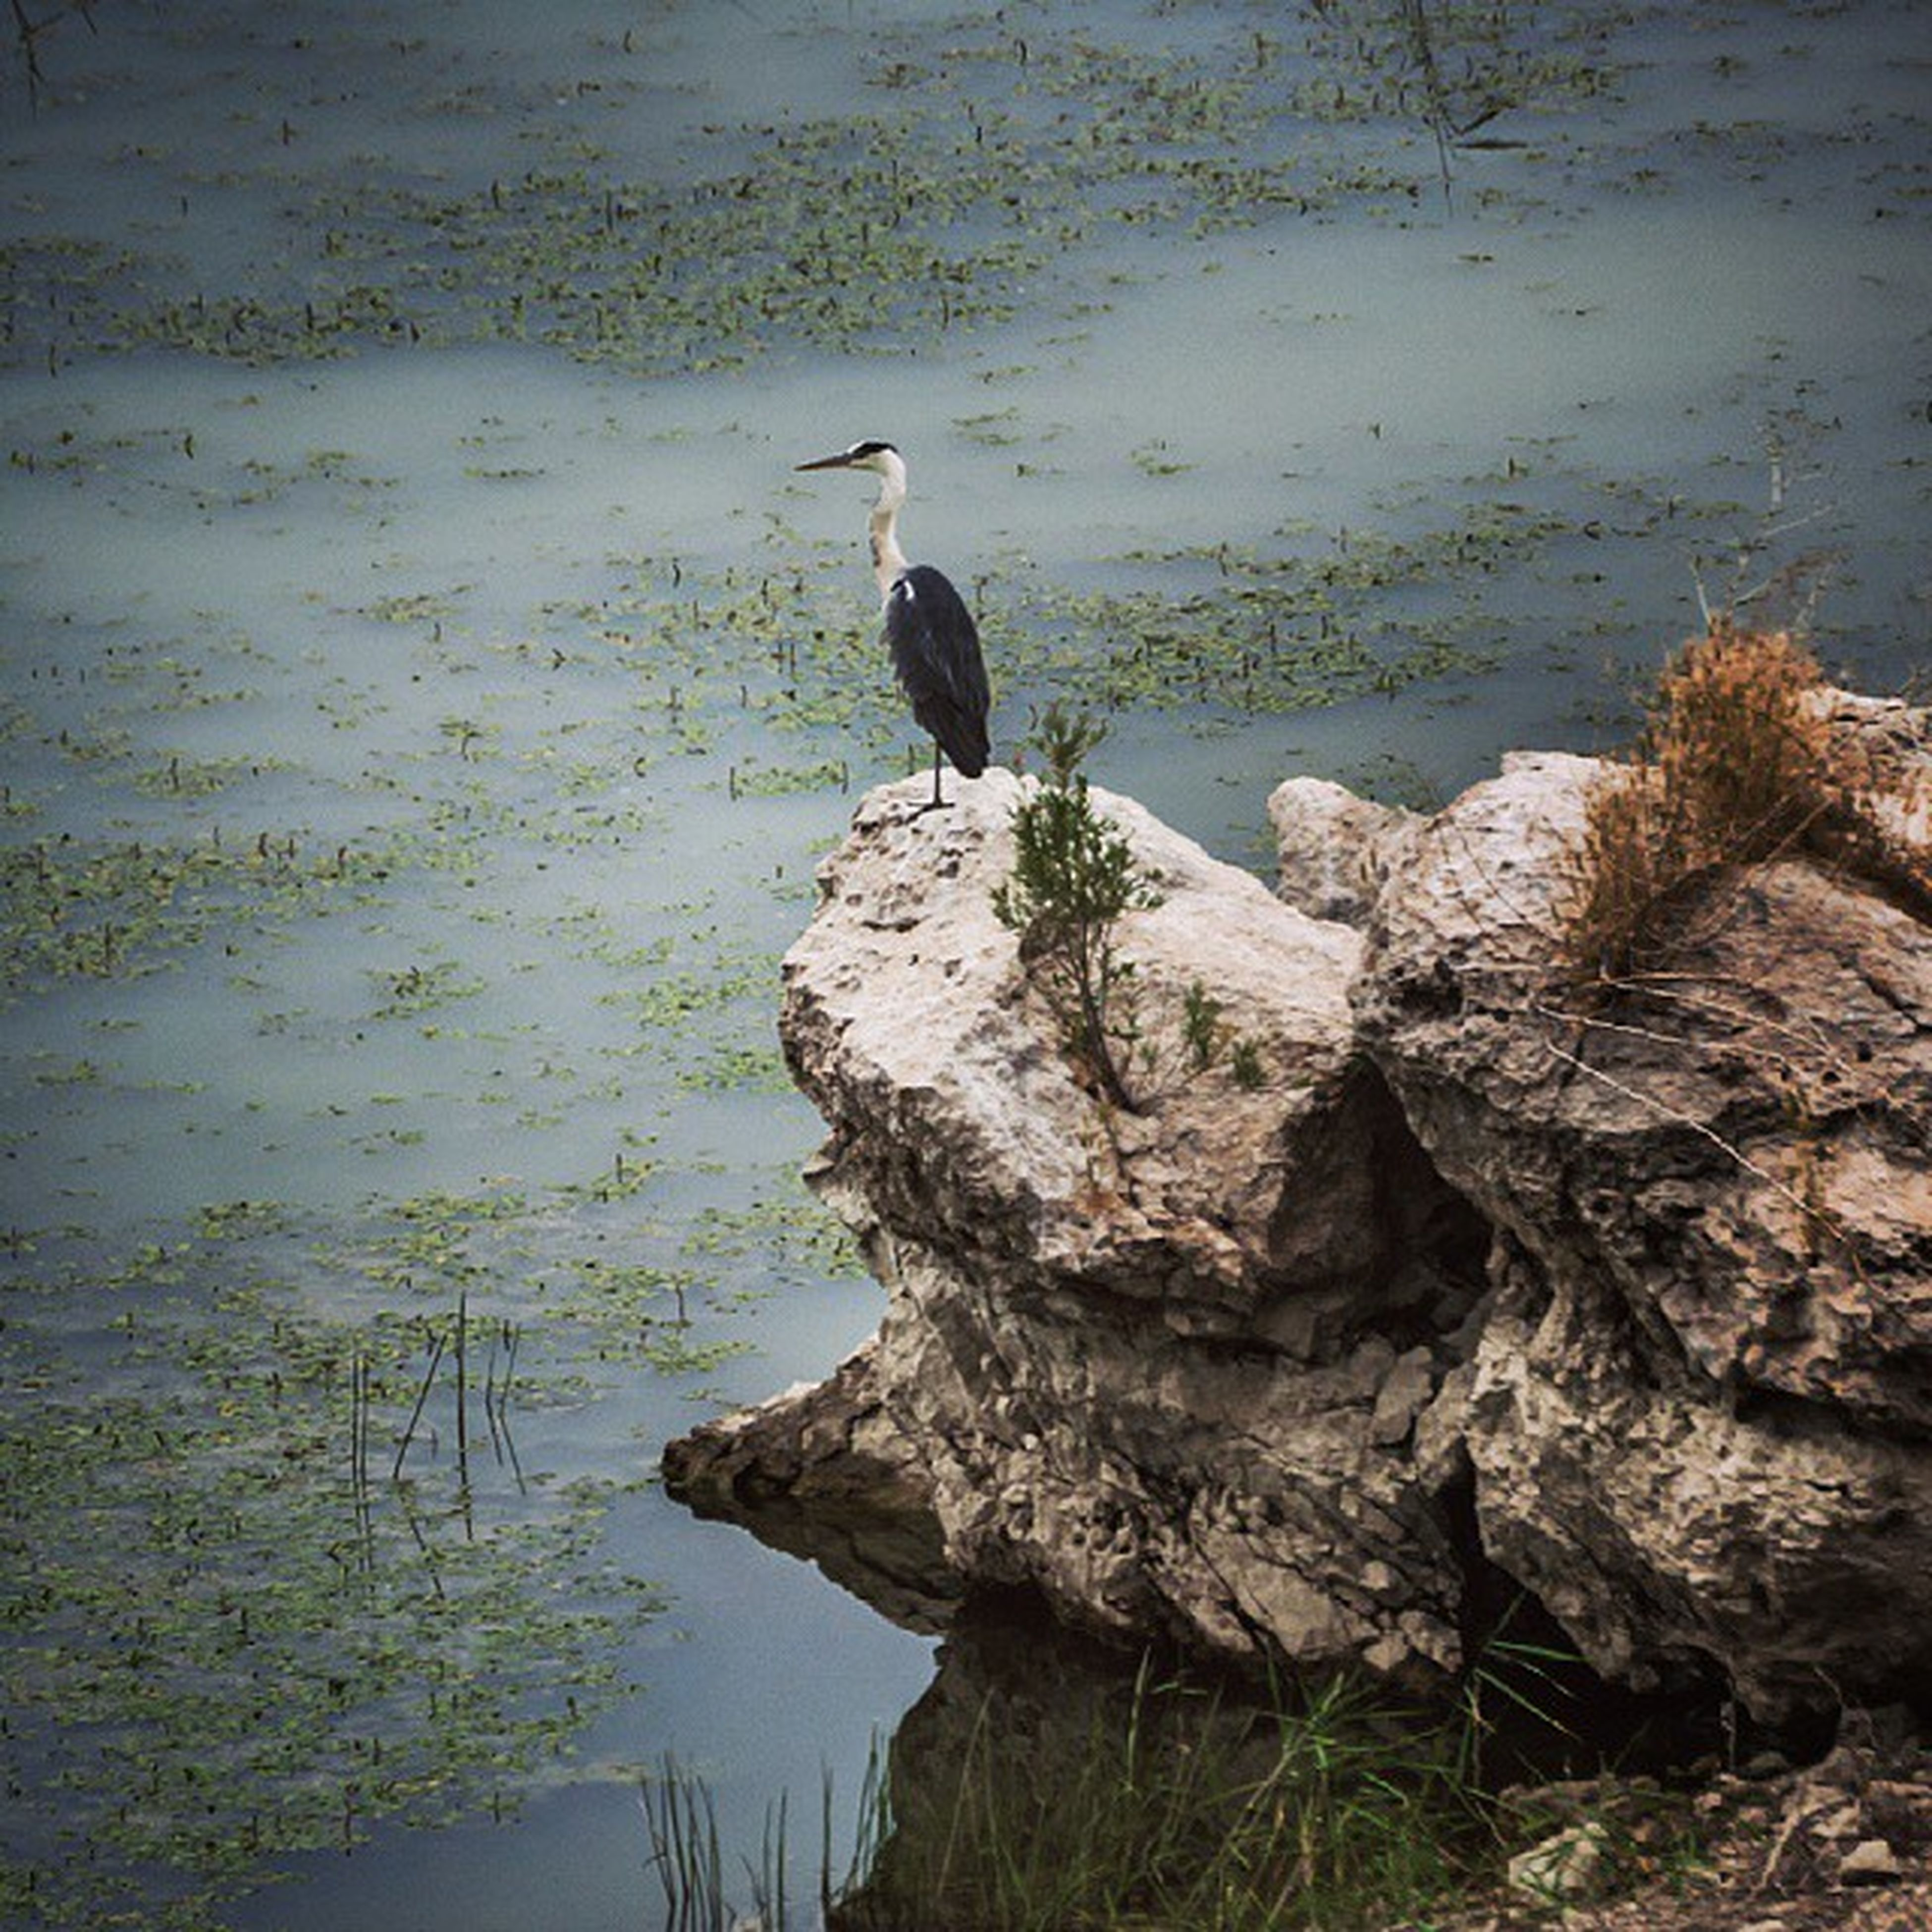 animal themes, bird, animals in the wild, water, wildlife, one animal, lake, nature, duck, full length, perching, reflection, tranquility, rock - object, day, outdoors, beauty in nature, side view, no people, standing